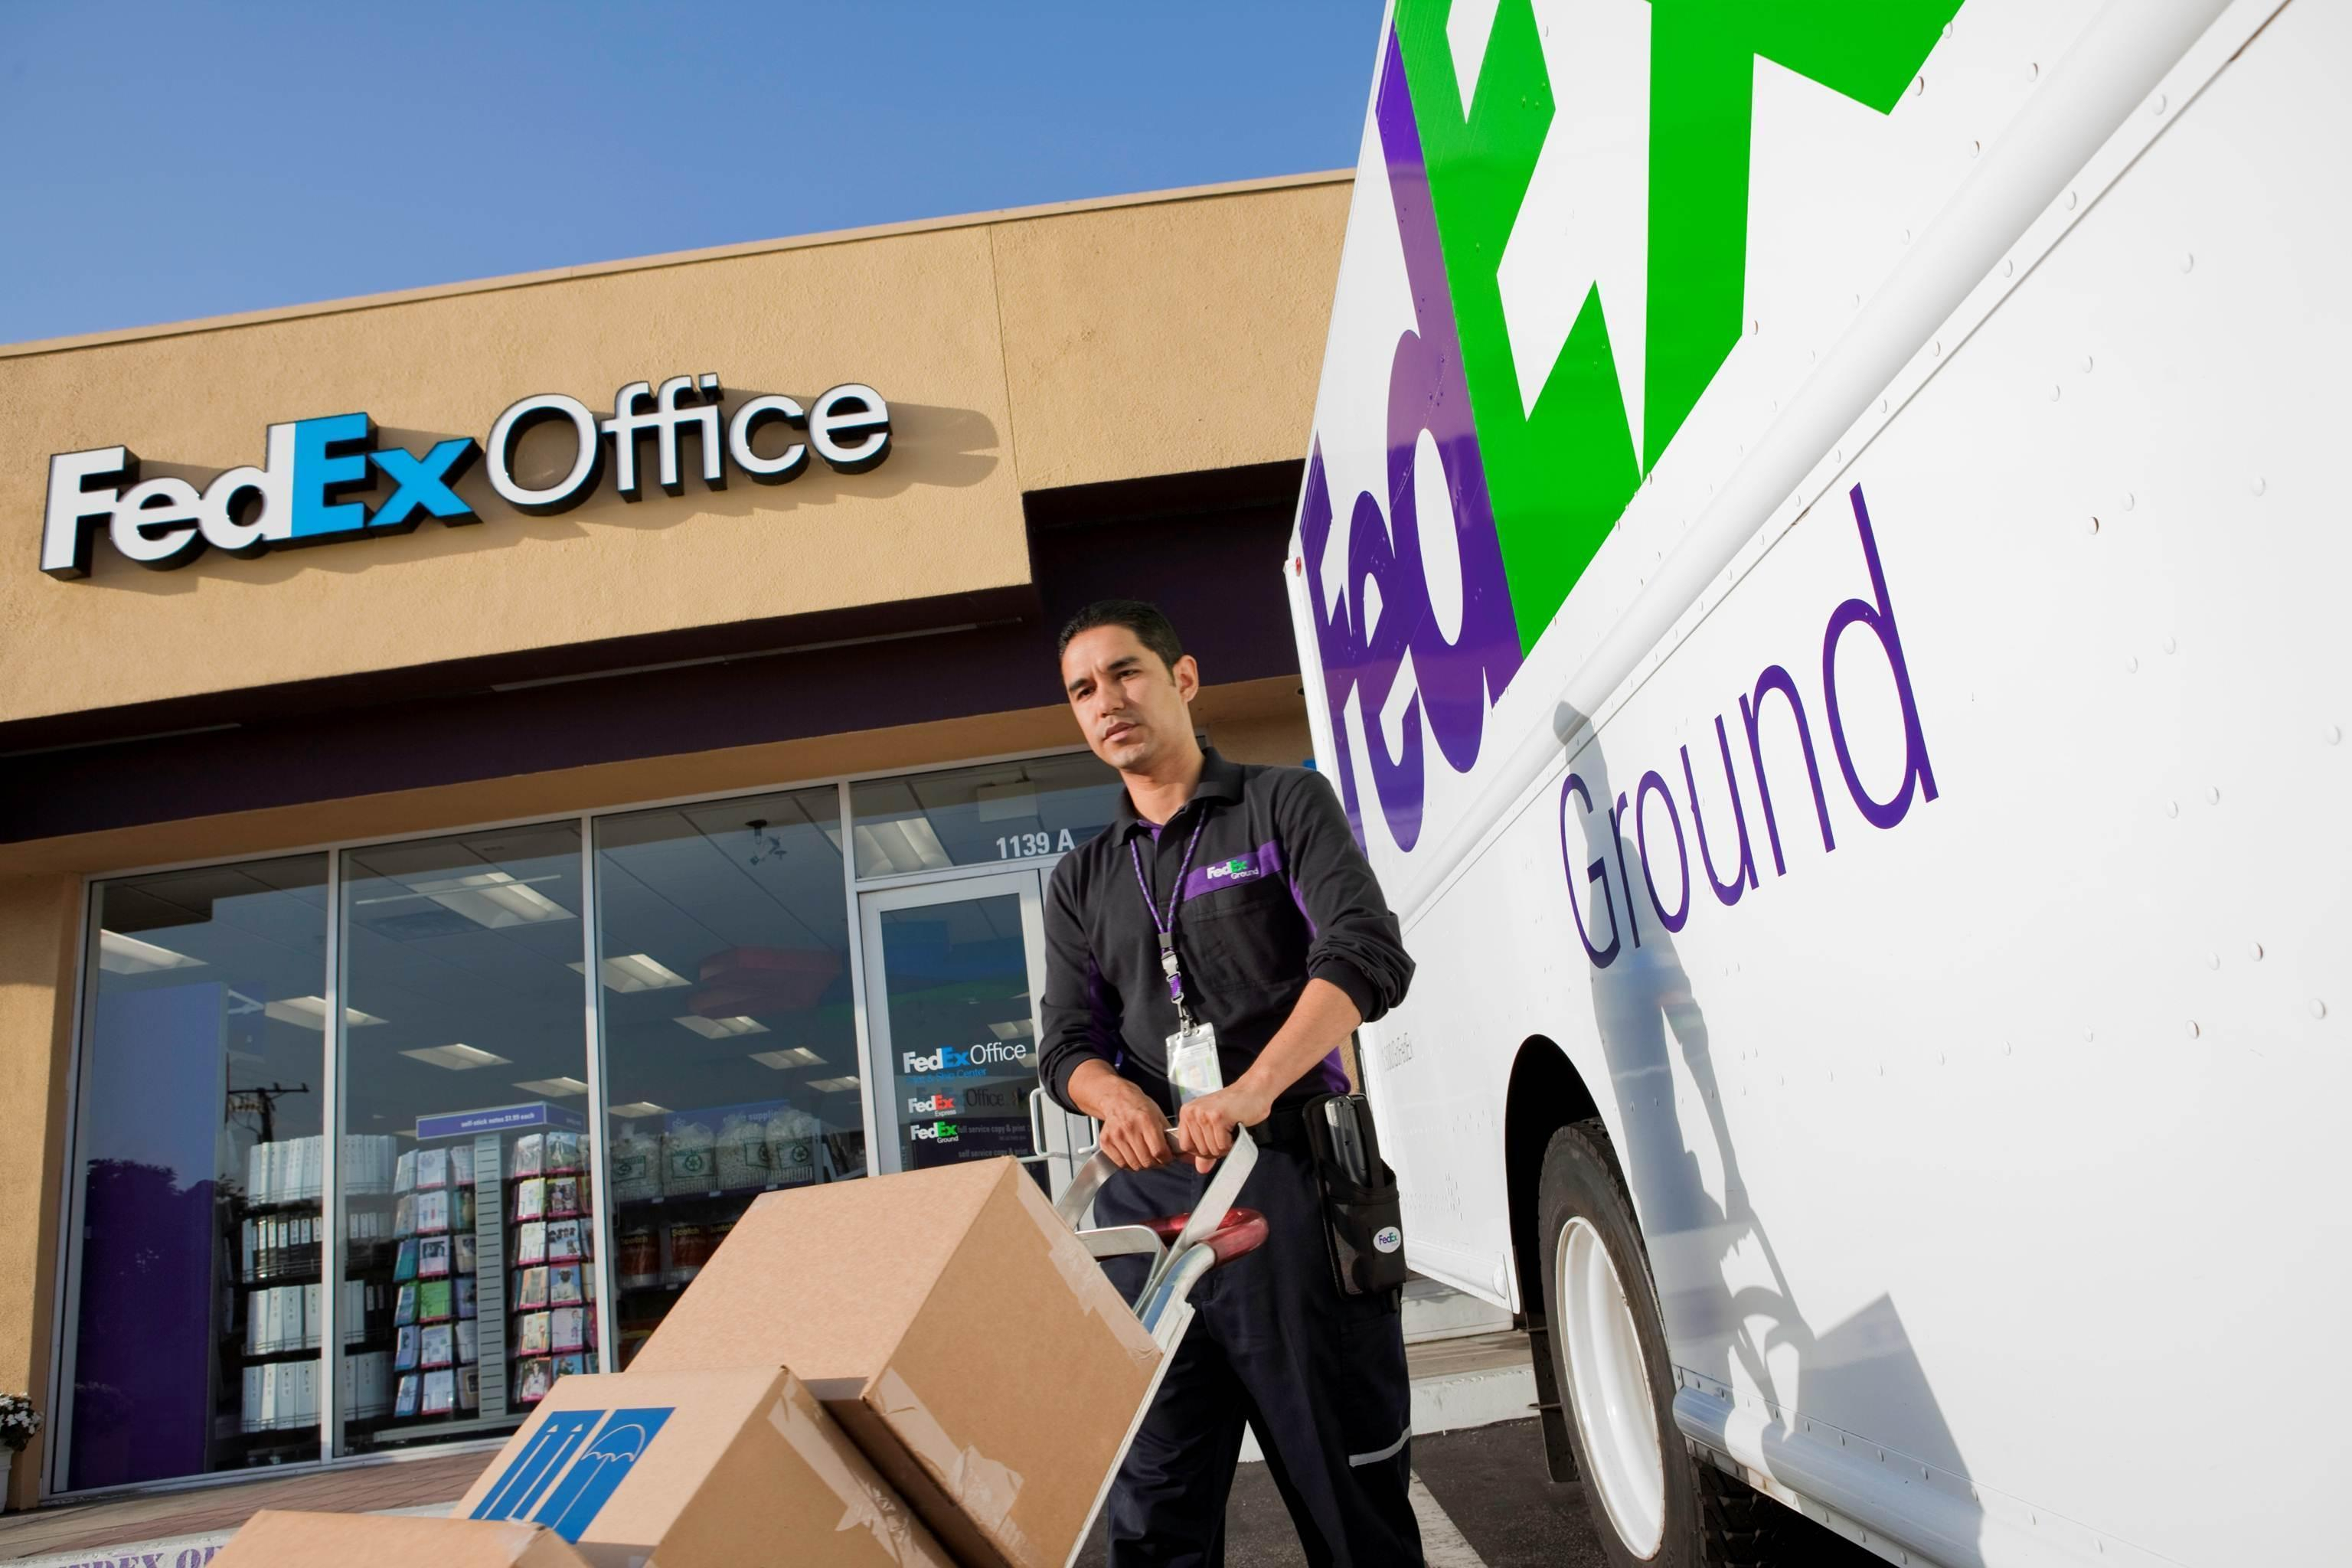 FedEx Office Print & Ship Center - ad image